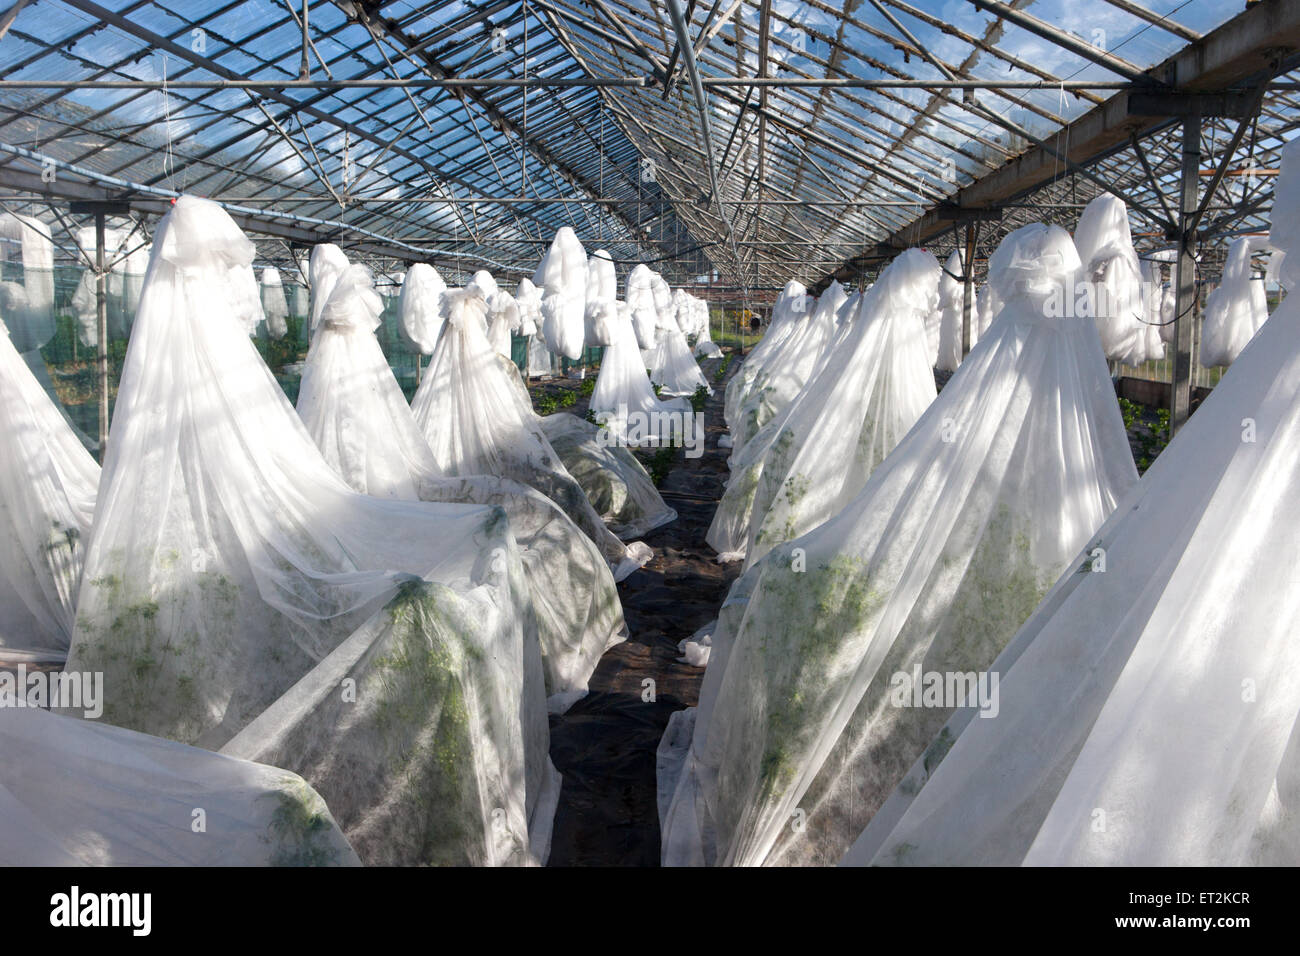 Growers shroud-like horticultural fleece covering tender plants inside Greenhouse, in Tarleton, Southport, West - Stock Image